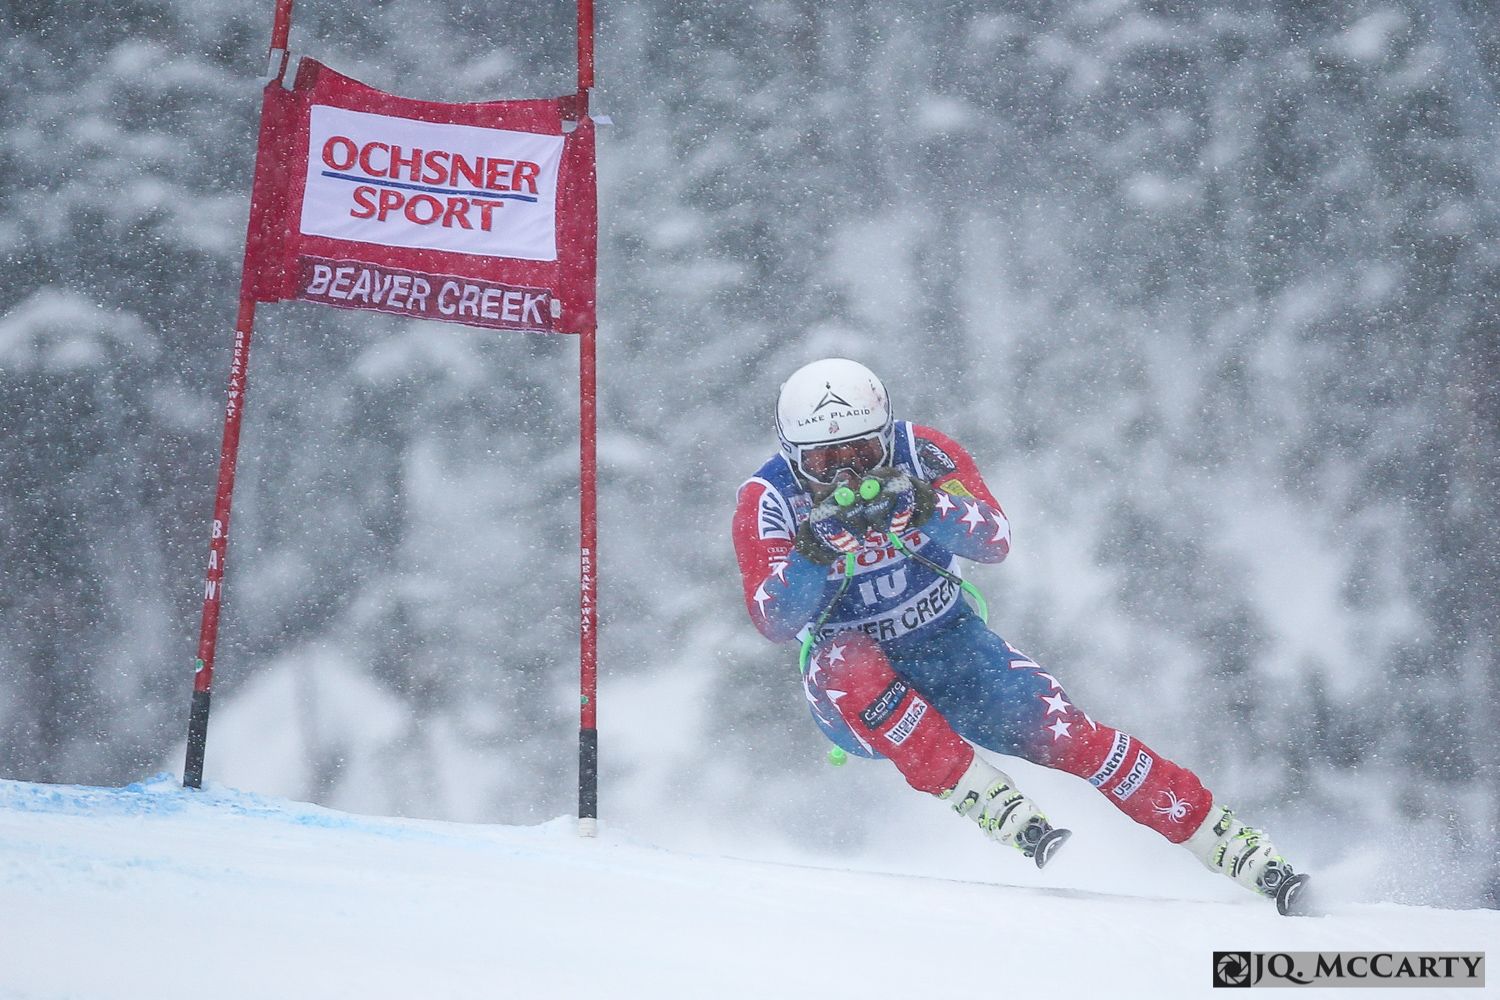 American Andrew Weibrecht speeds past a gate on a snowy day during the Birds of Prey World Cup super-G race Saturday in Beaver Creek. Weibrecht ended up on the podium taking third place with a time of 1 minute, 7.26 seconds.